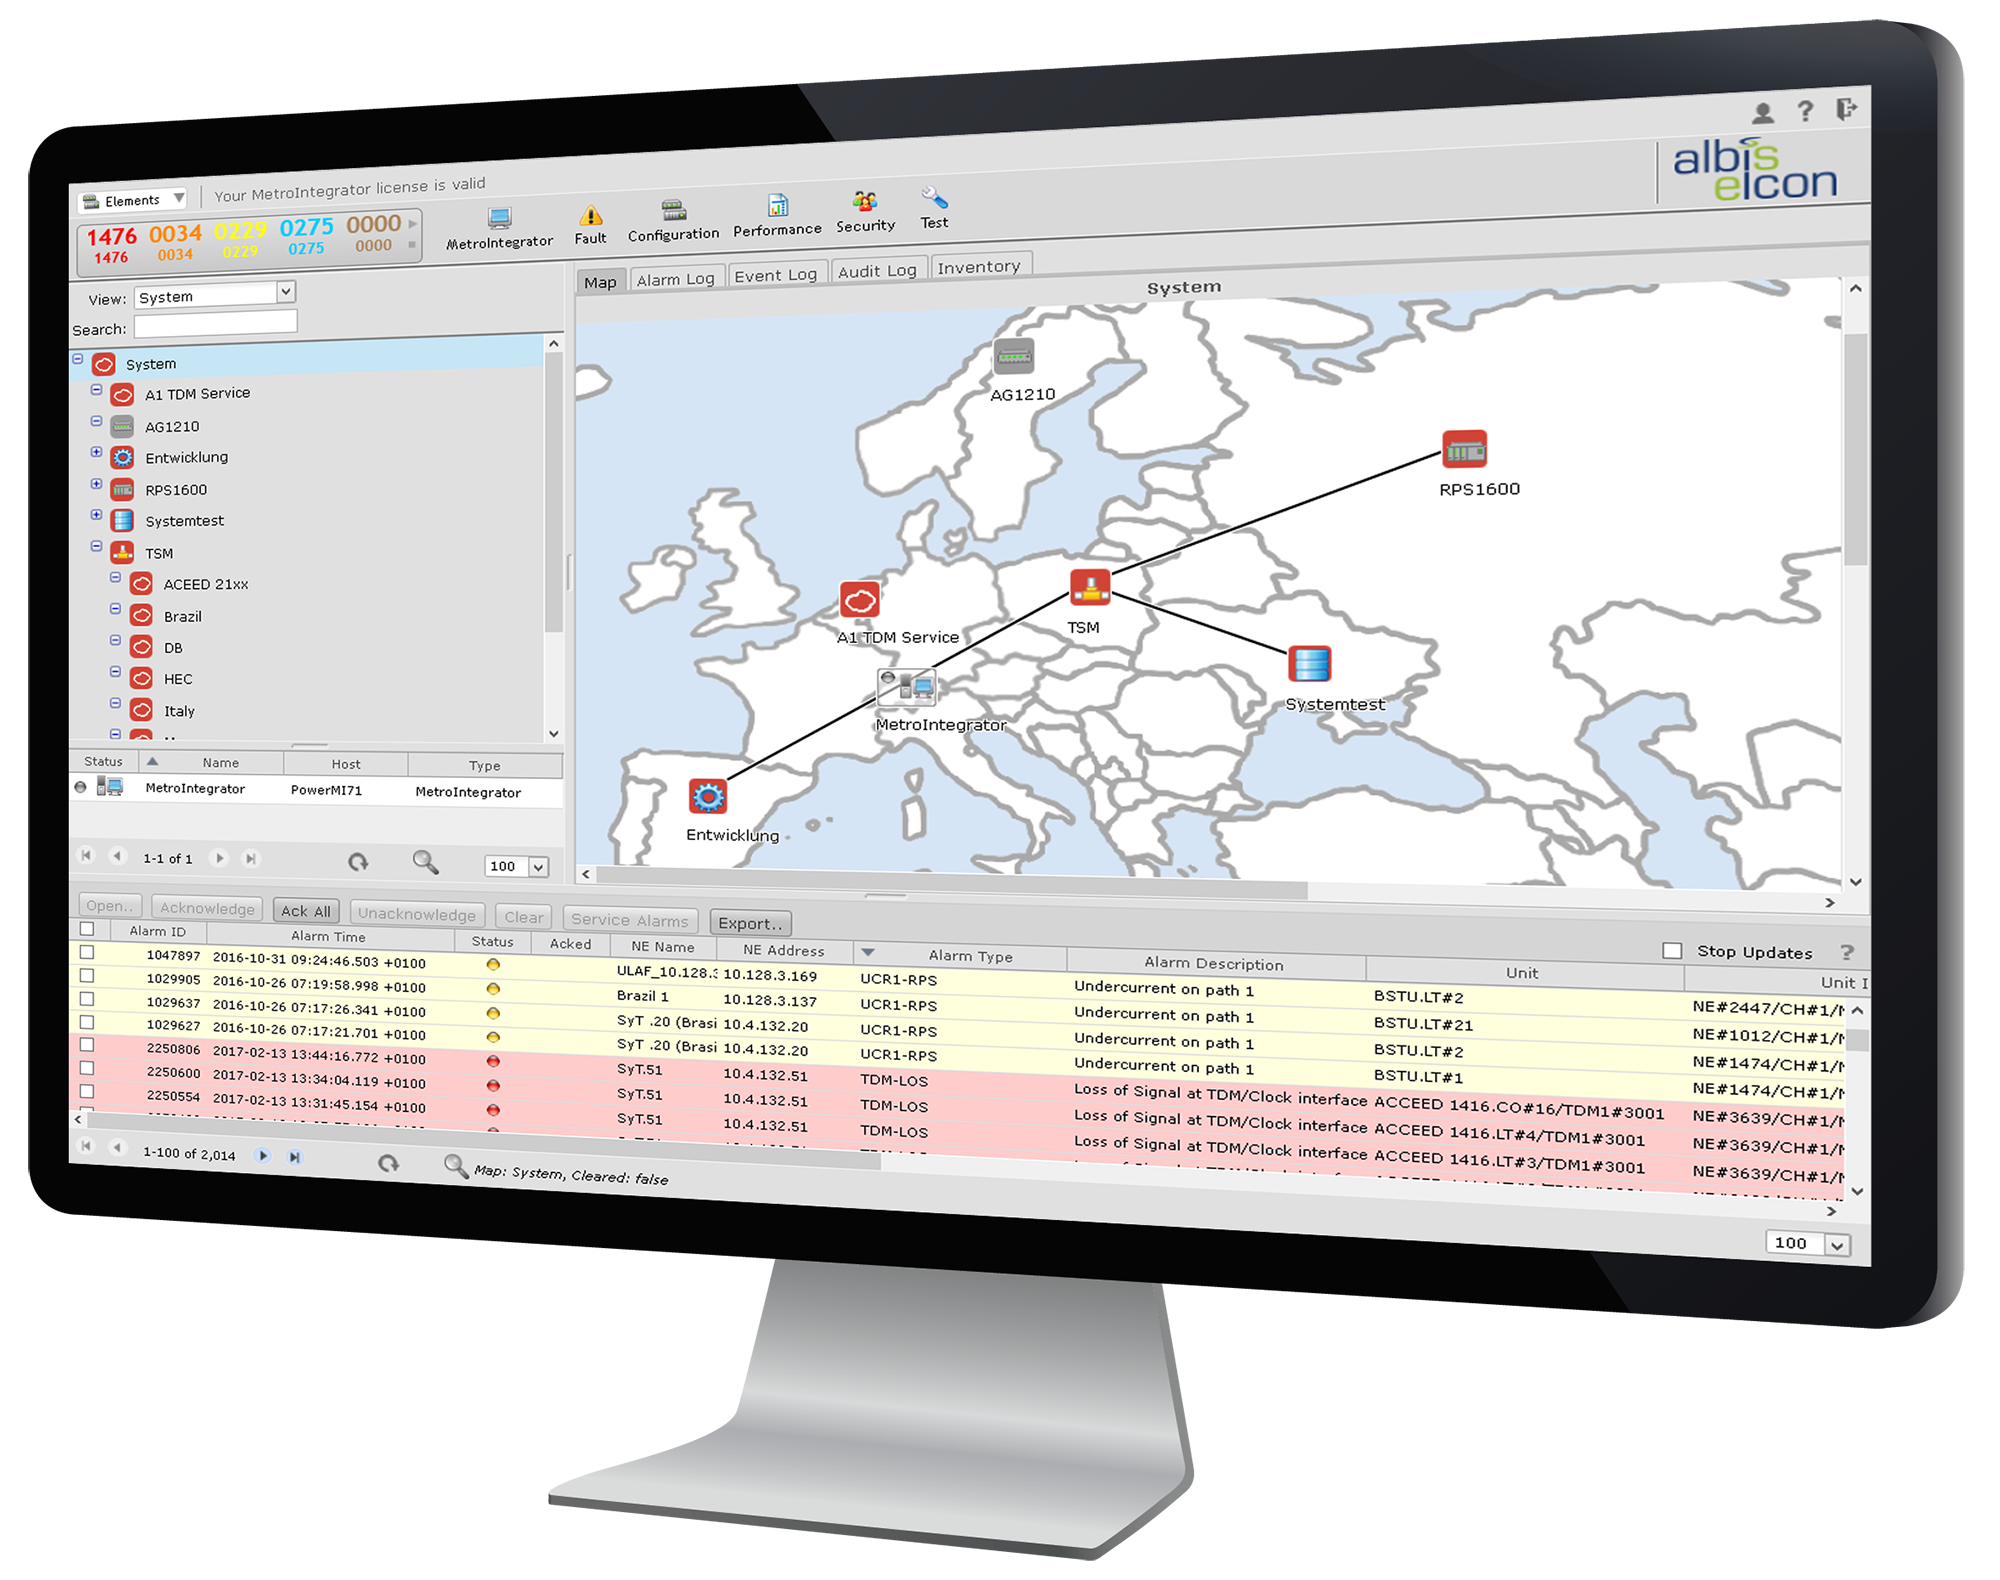 albis-elcon - MetroIntegrator: Network and Element Manager for the ULAF+ Access and Aggregation Platform